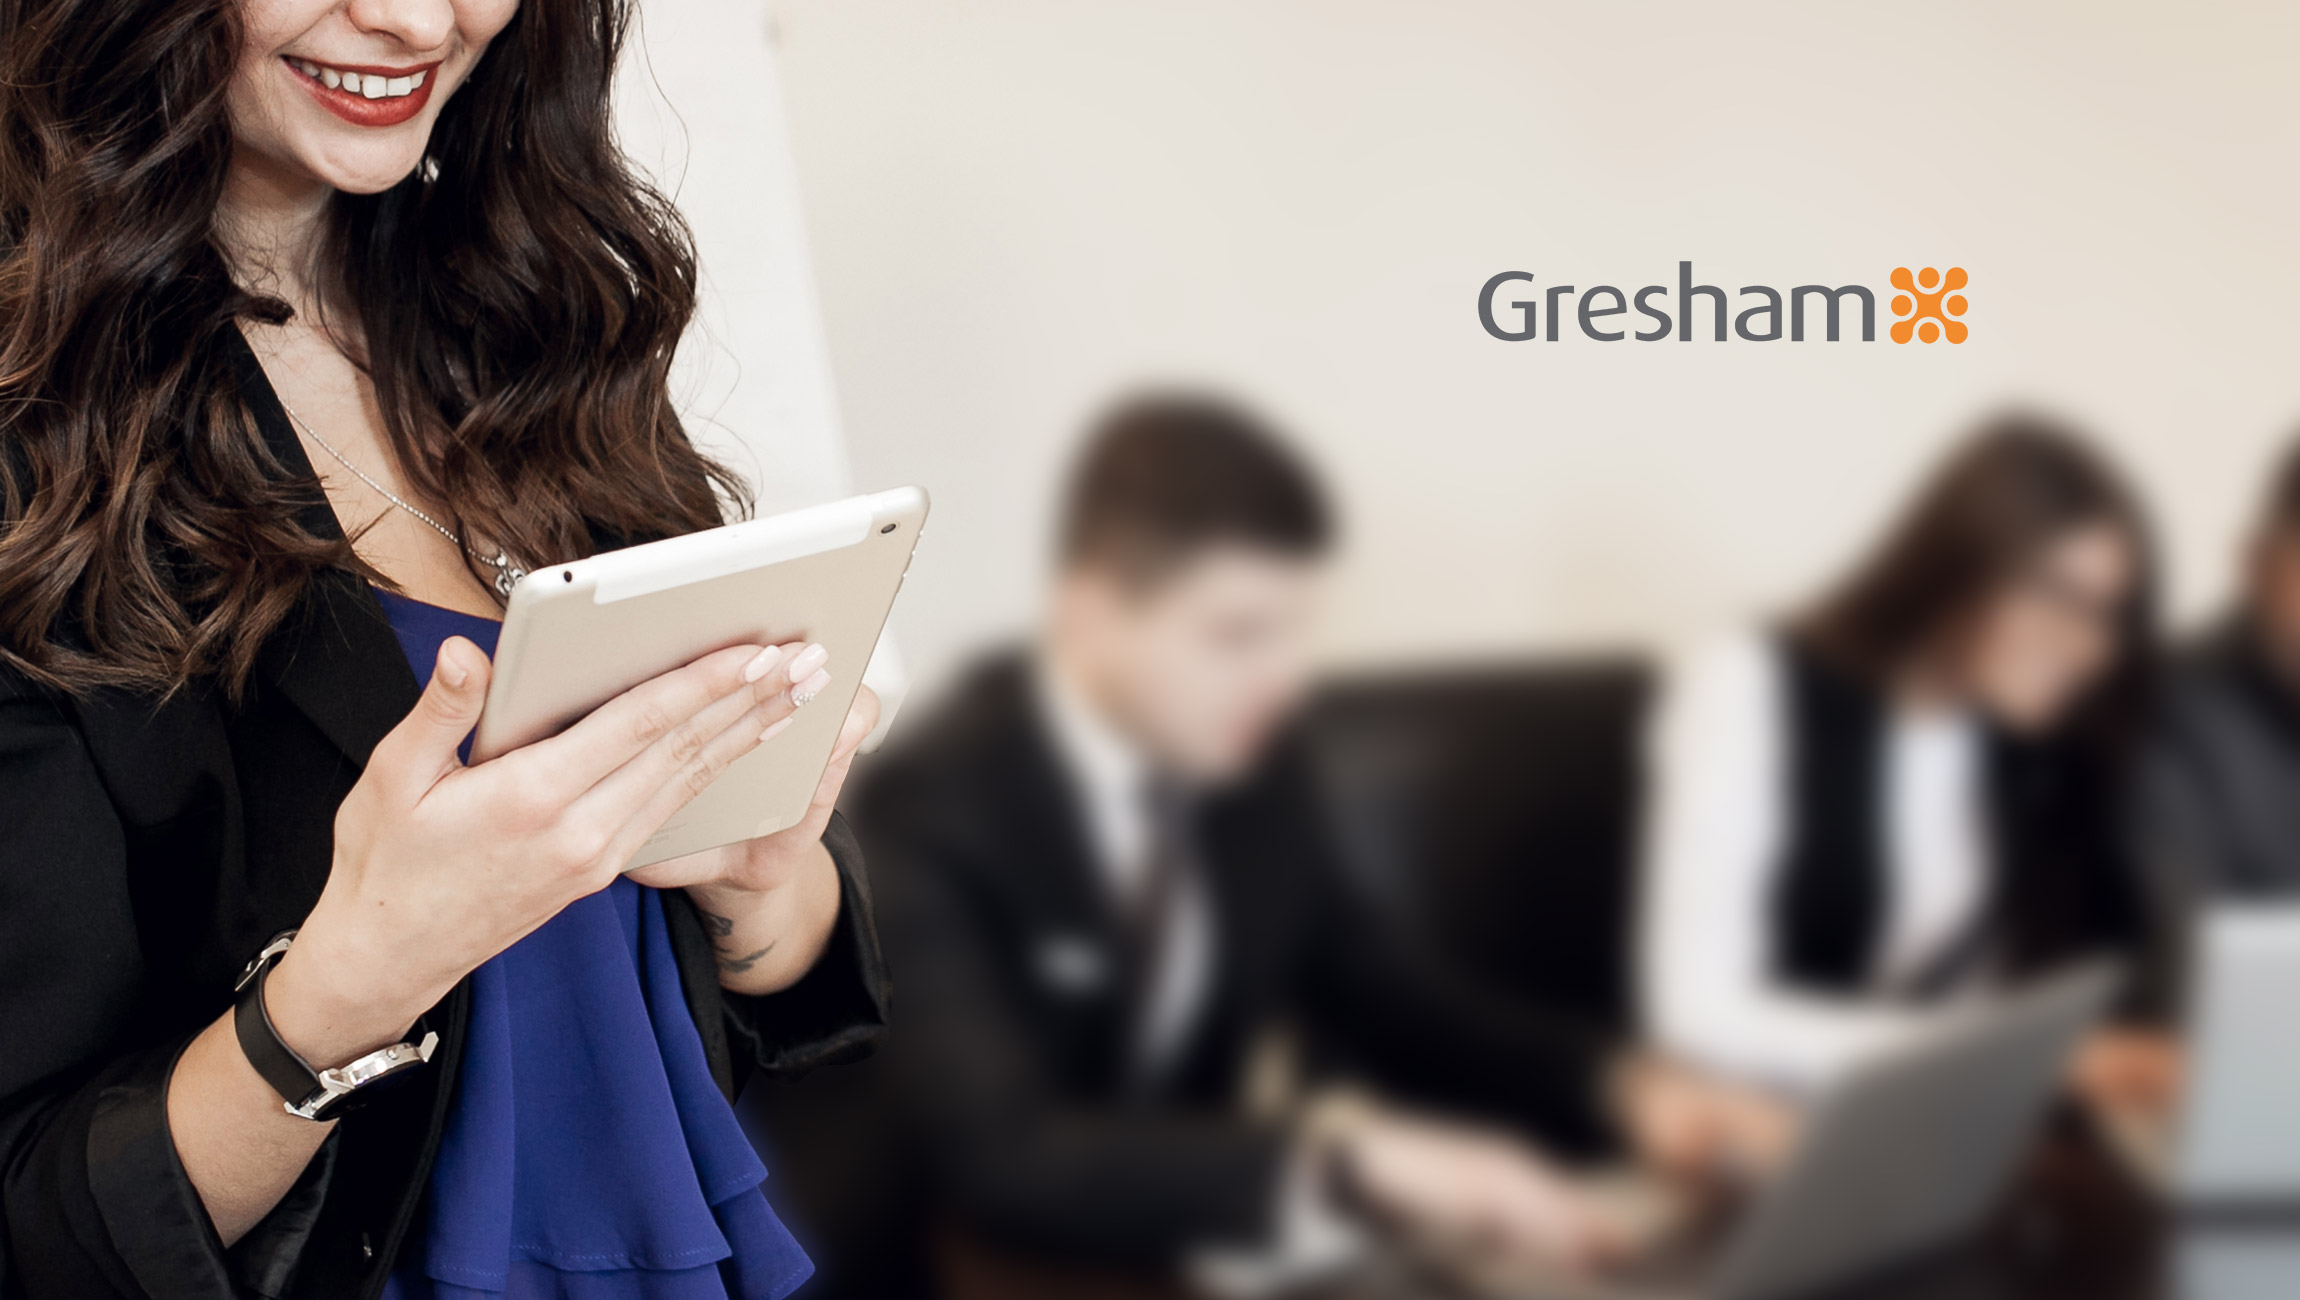 New Research as Commissioned by Gresham Technologies plc Shows Financial Institutions See Data Quality and Control as Drivers for Global Business Growth